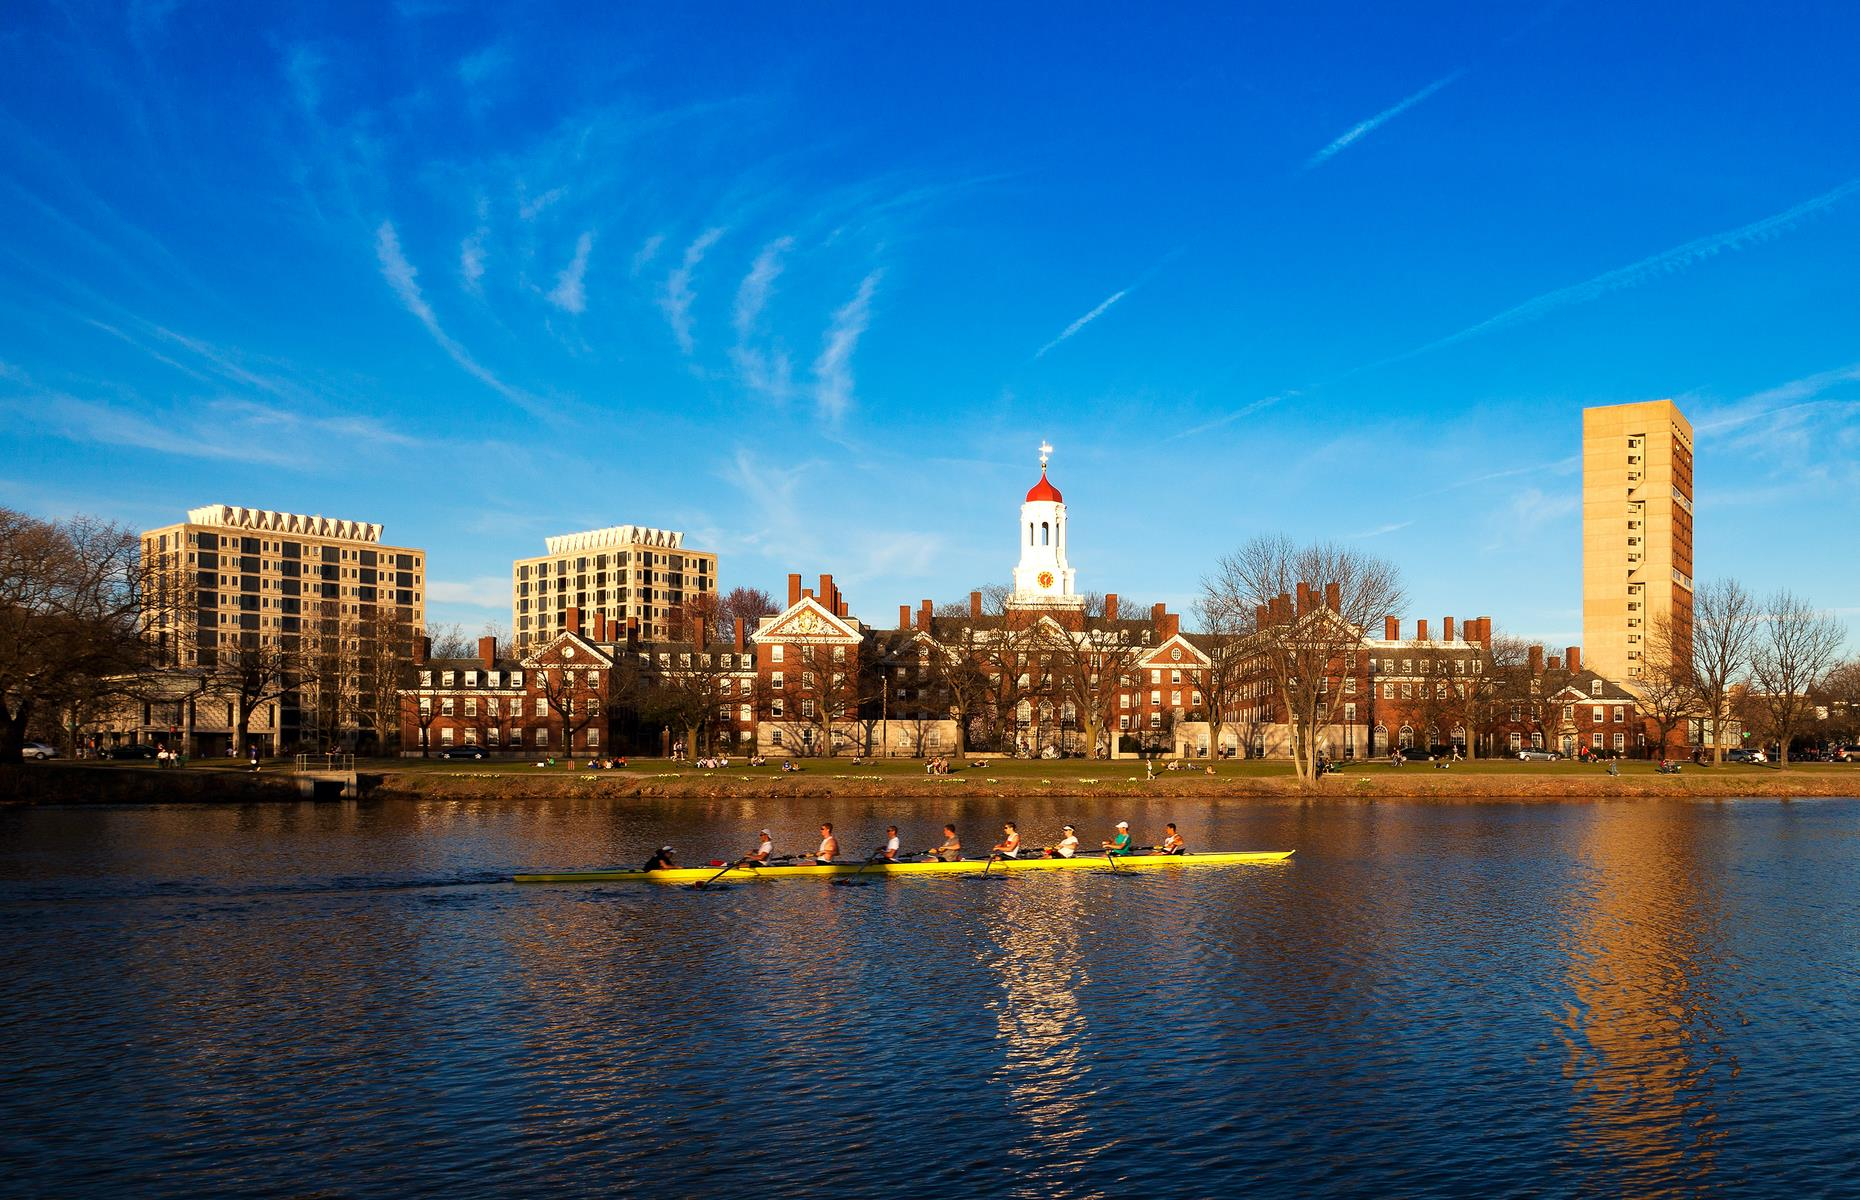 Slide 12 of 41: Just over the Charles River from Boston is Cambridge,home of Harvard University. The nation's first college, it was established in 1636 by Cambridge University alumnus John Harvard. Its student-led tours are a great way to hear the incredible history of these hallowed halls – at the moment only virtual tours are on offer. Harvard's prestigious alumni include numerous presidents: John Adams (the country's second president), John F Kennedy and Barack Obama to name just a few.